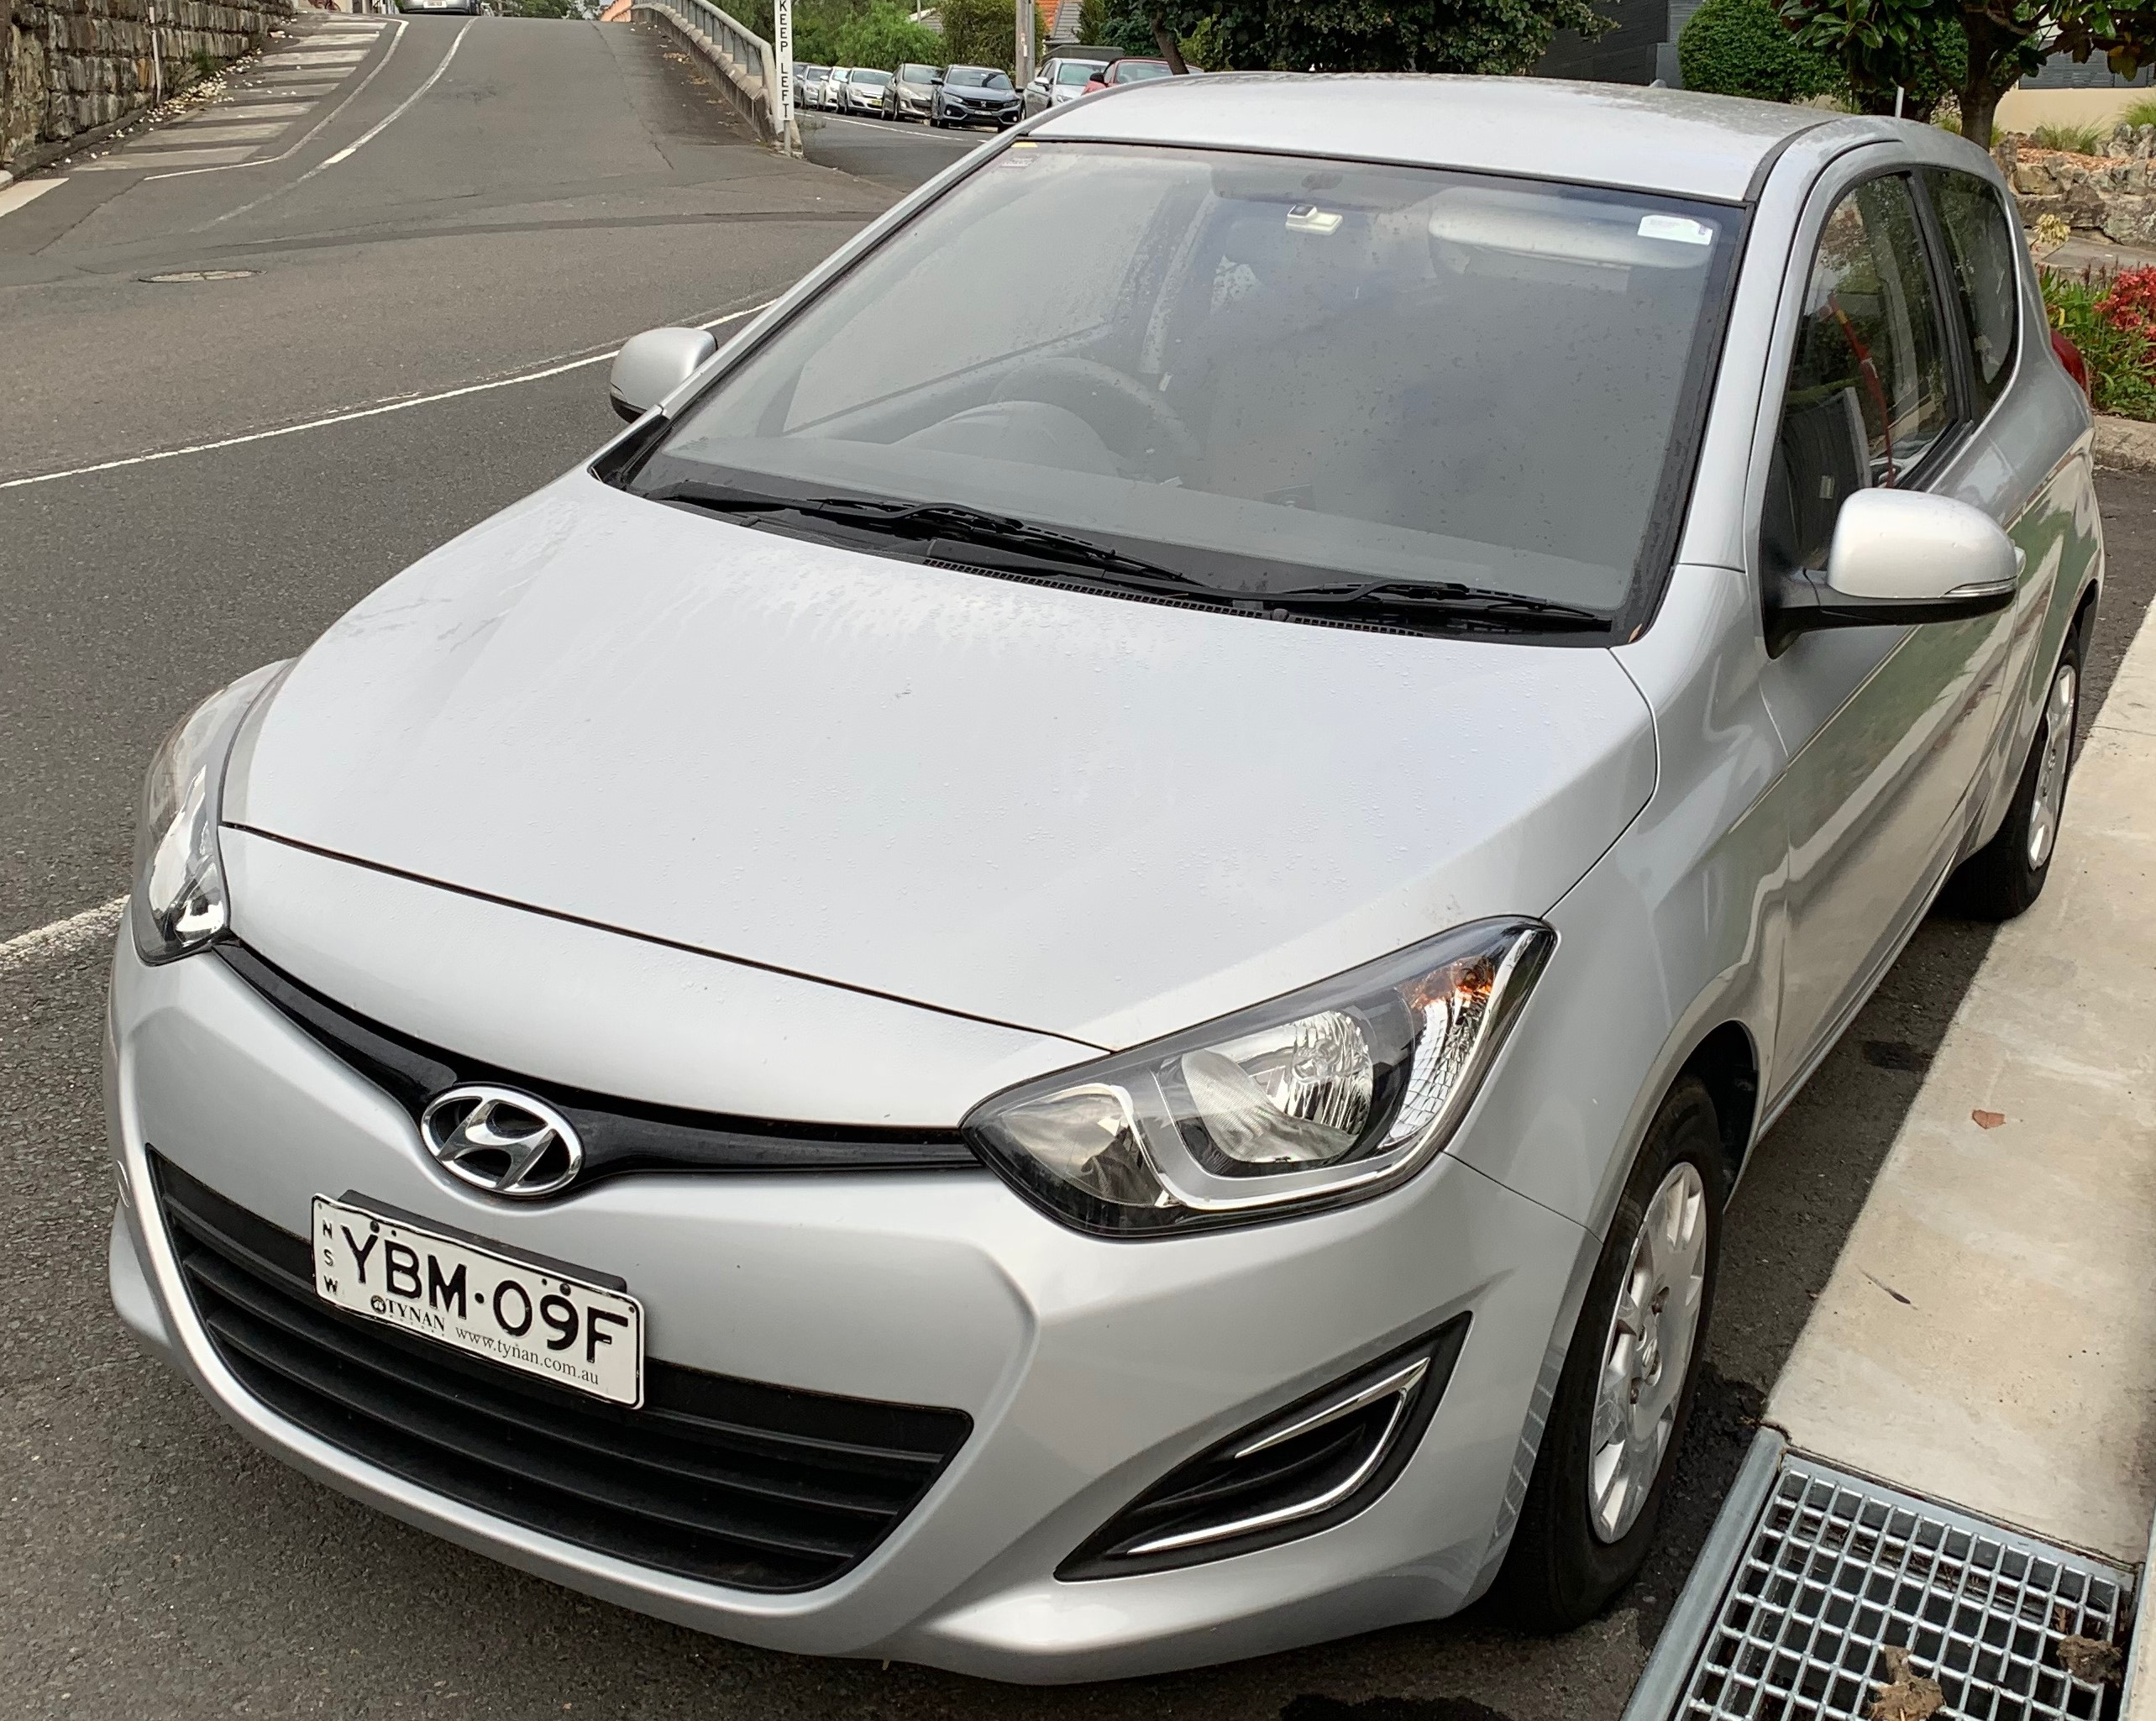 Picture of Jackson's 2012 Hyundai i20